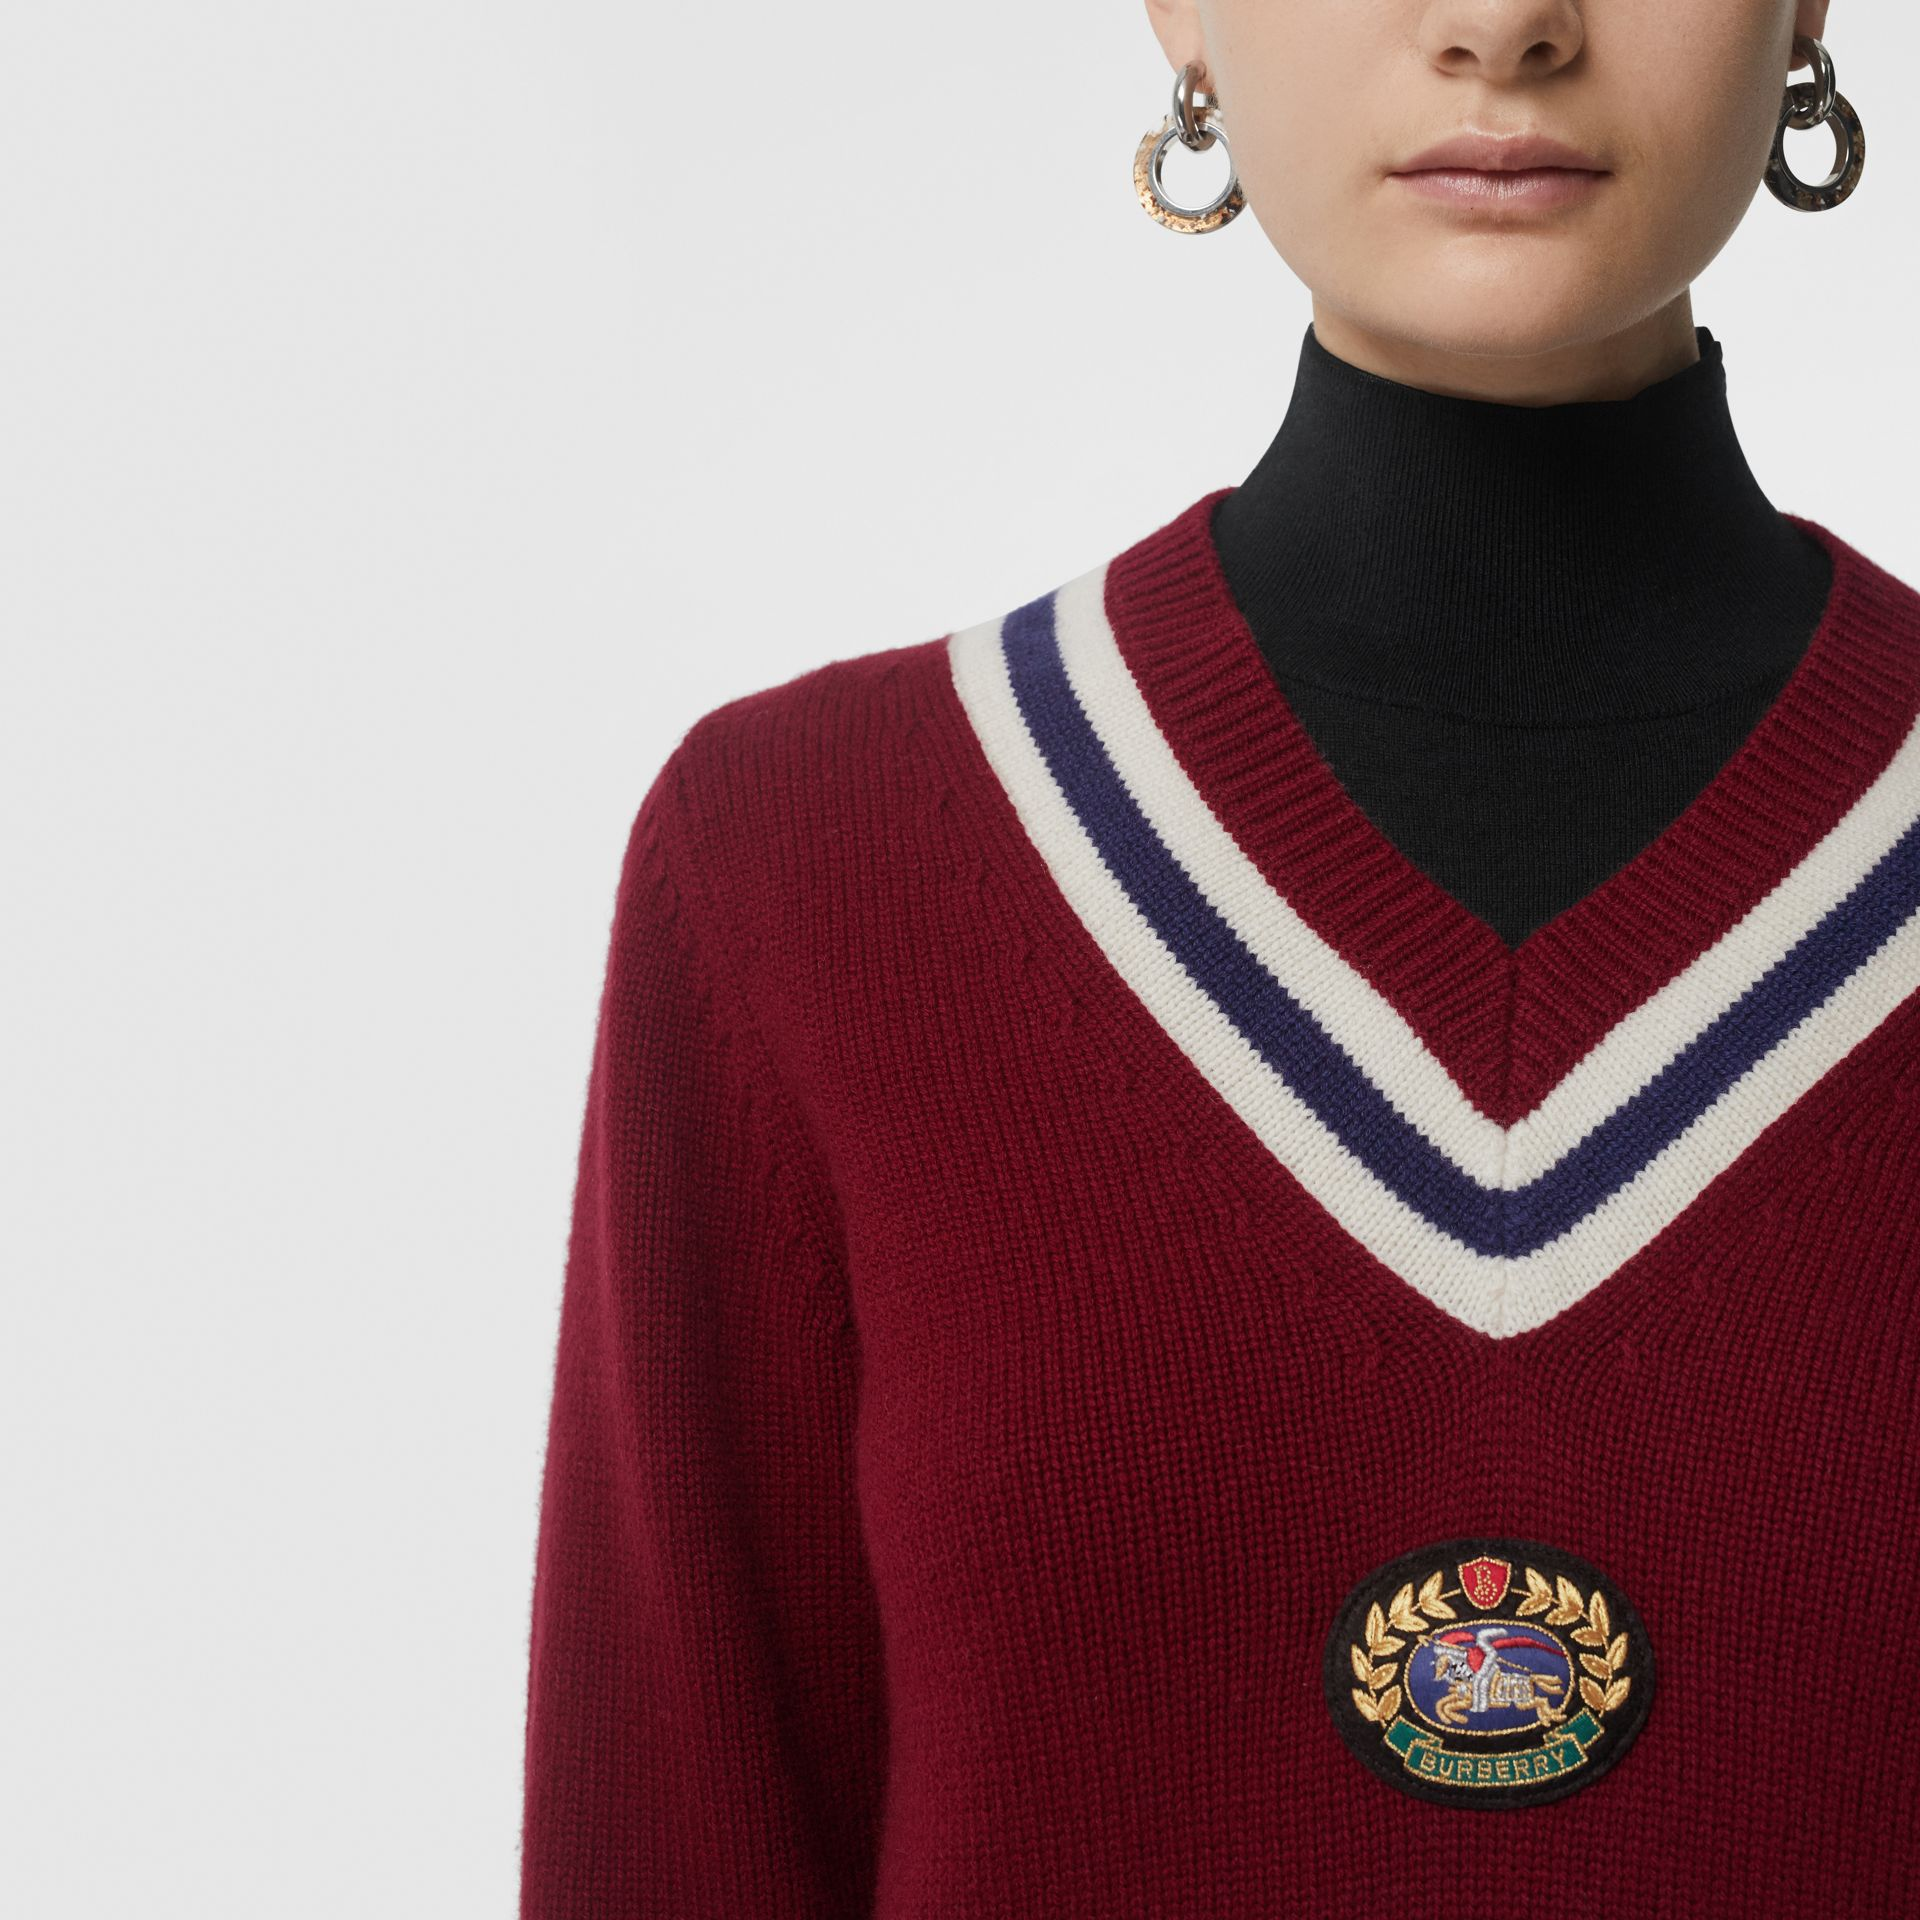 Embroidered Crest Wool Cashmere Sweater in Burgundy - Women | Burberry Australia - gallery image 5